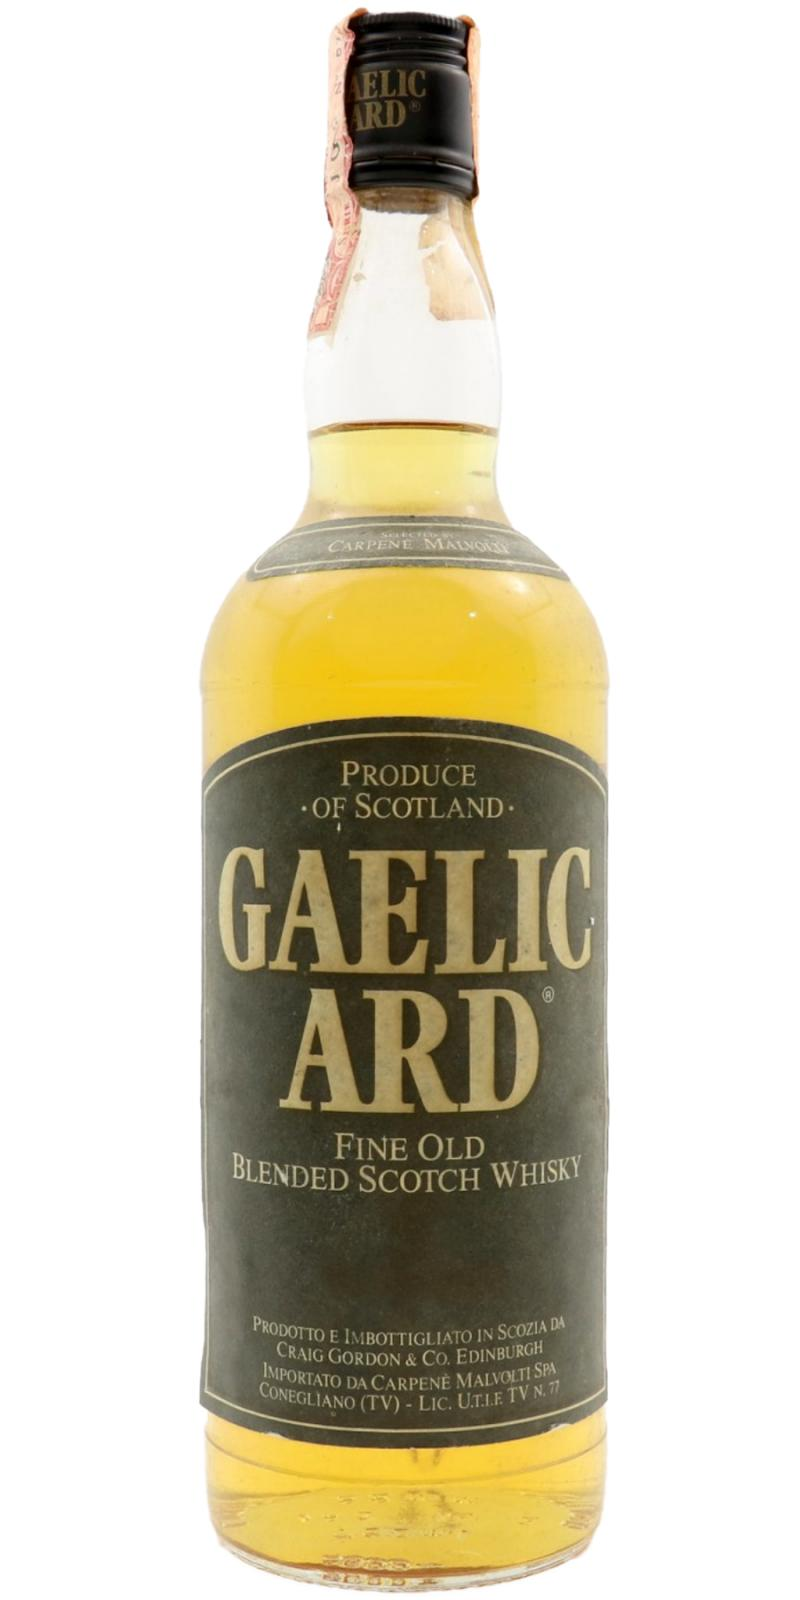 Gaelic Ard Fine Old Blended Scotch Whisky